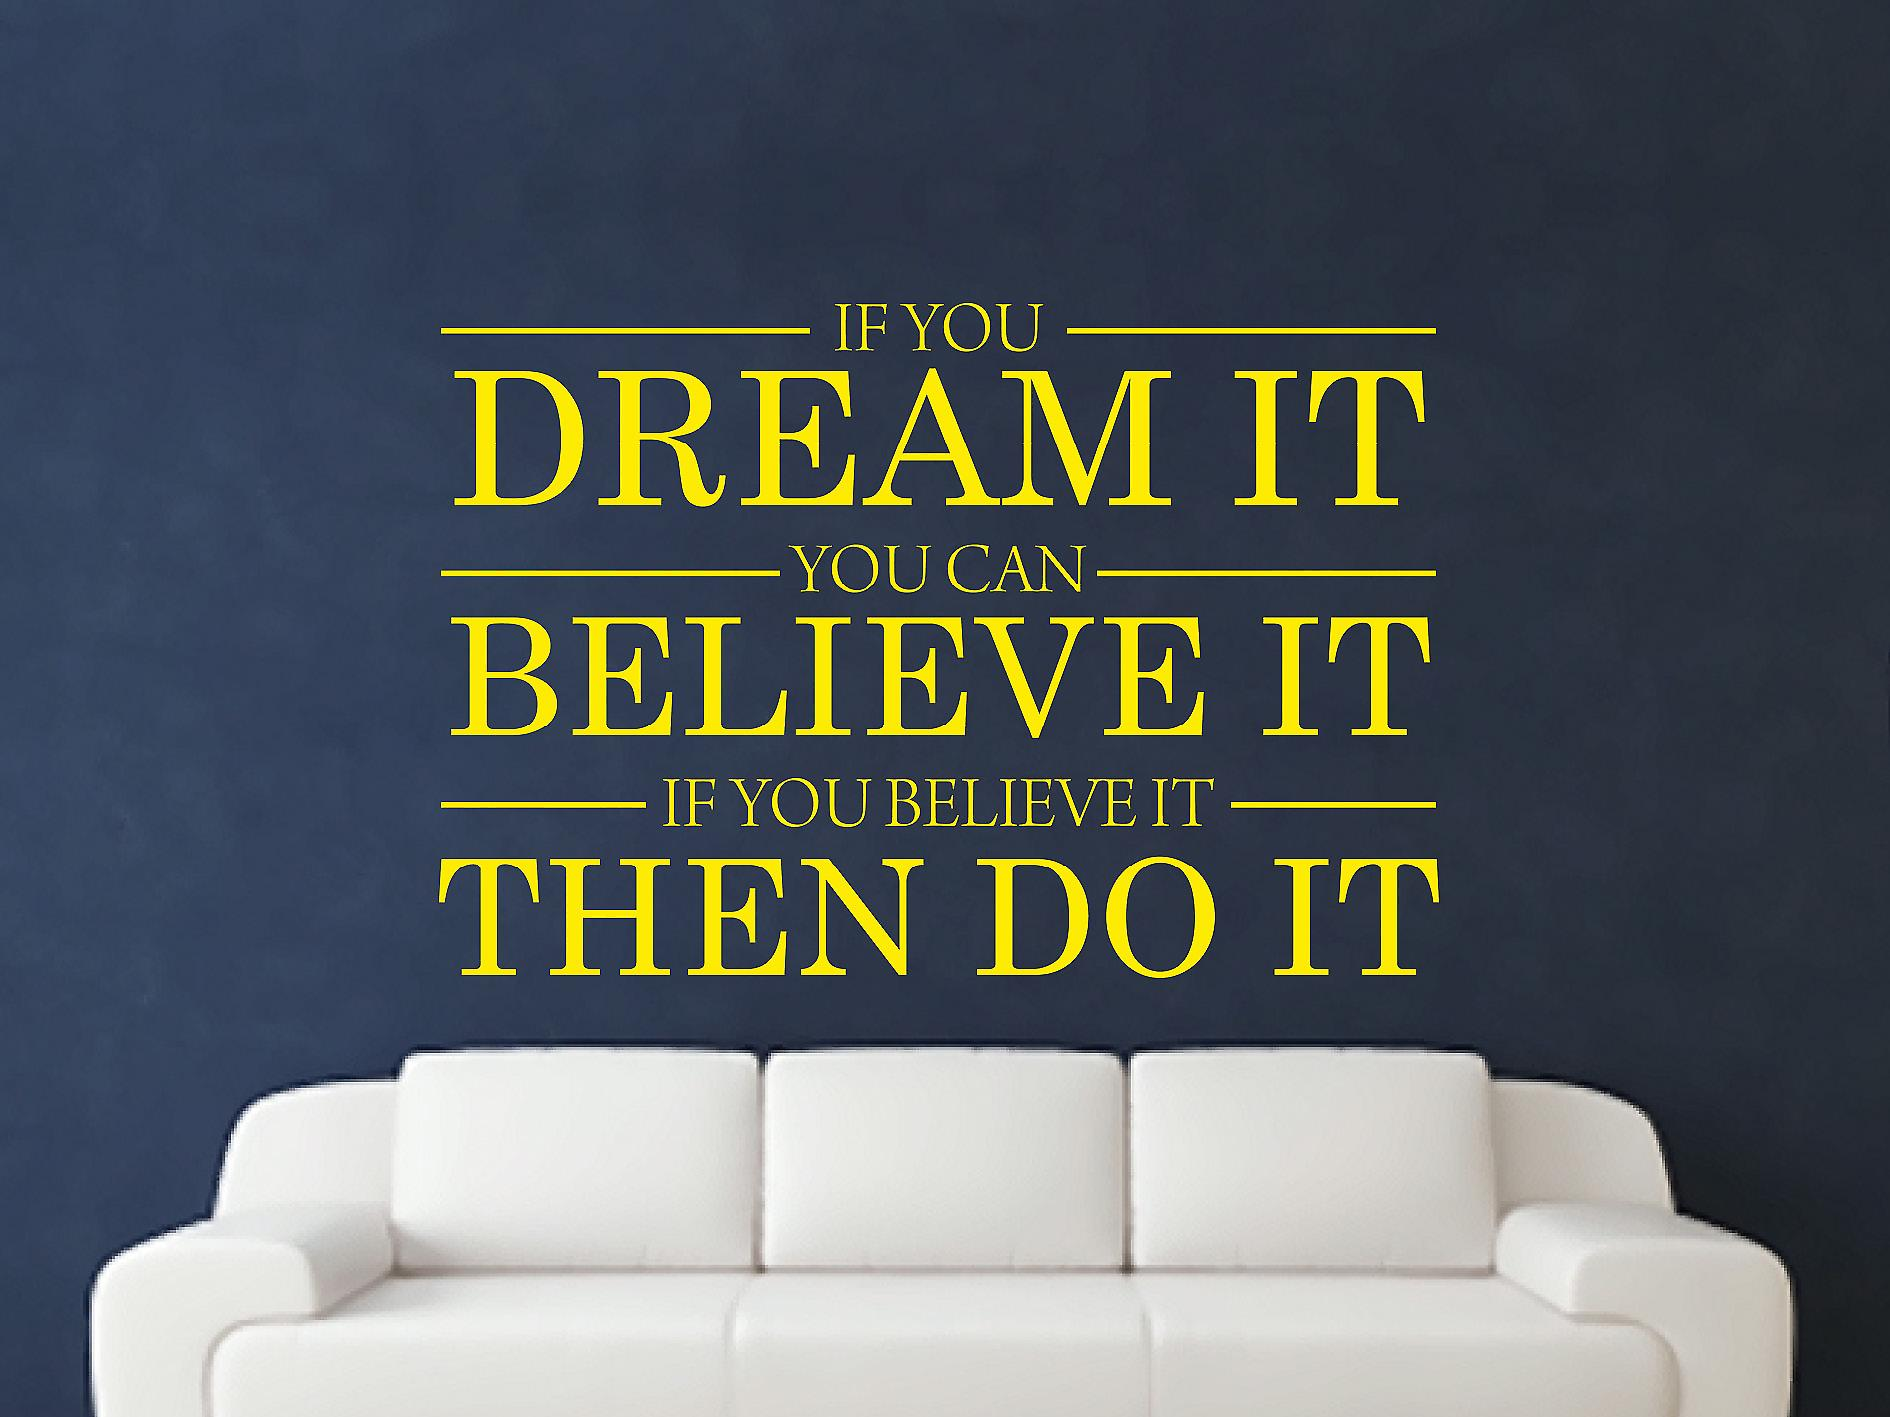 Dream It Believe It Do It Wall Art Sticker - Bright Yellow